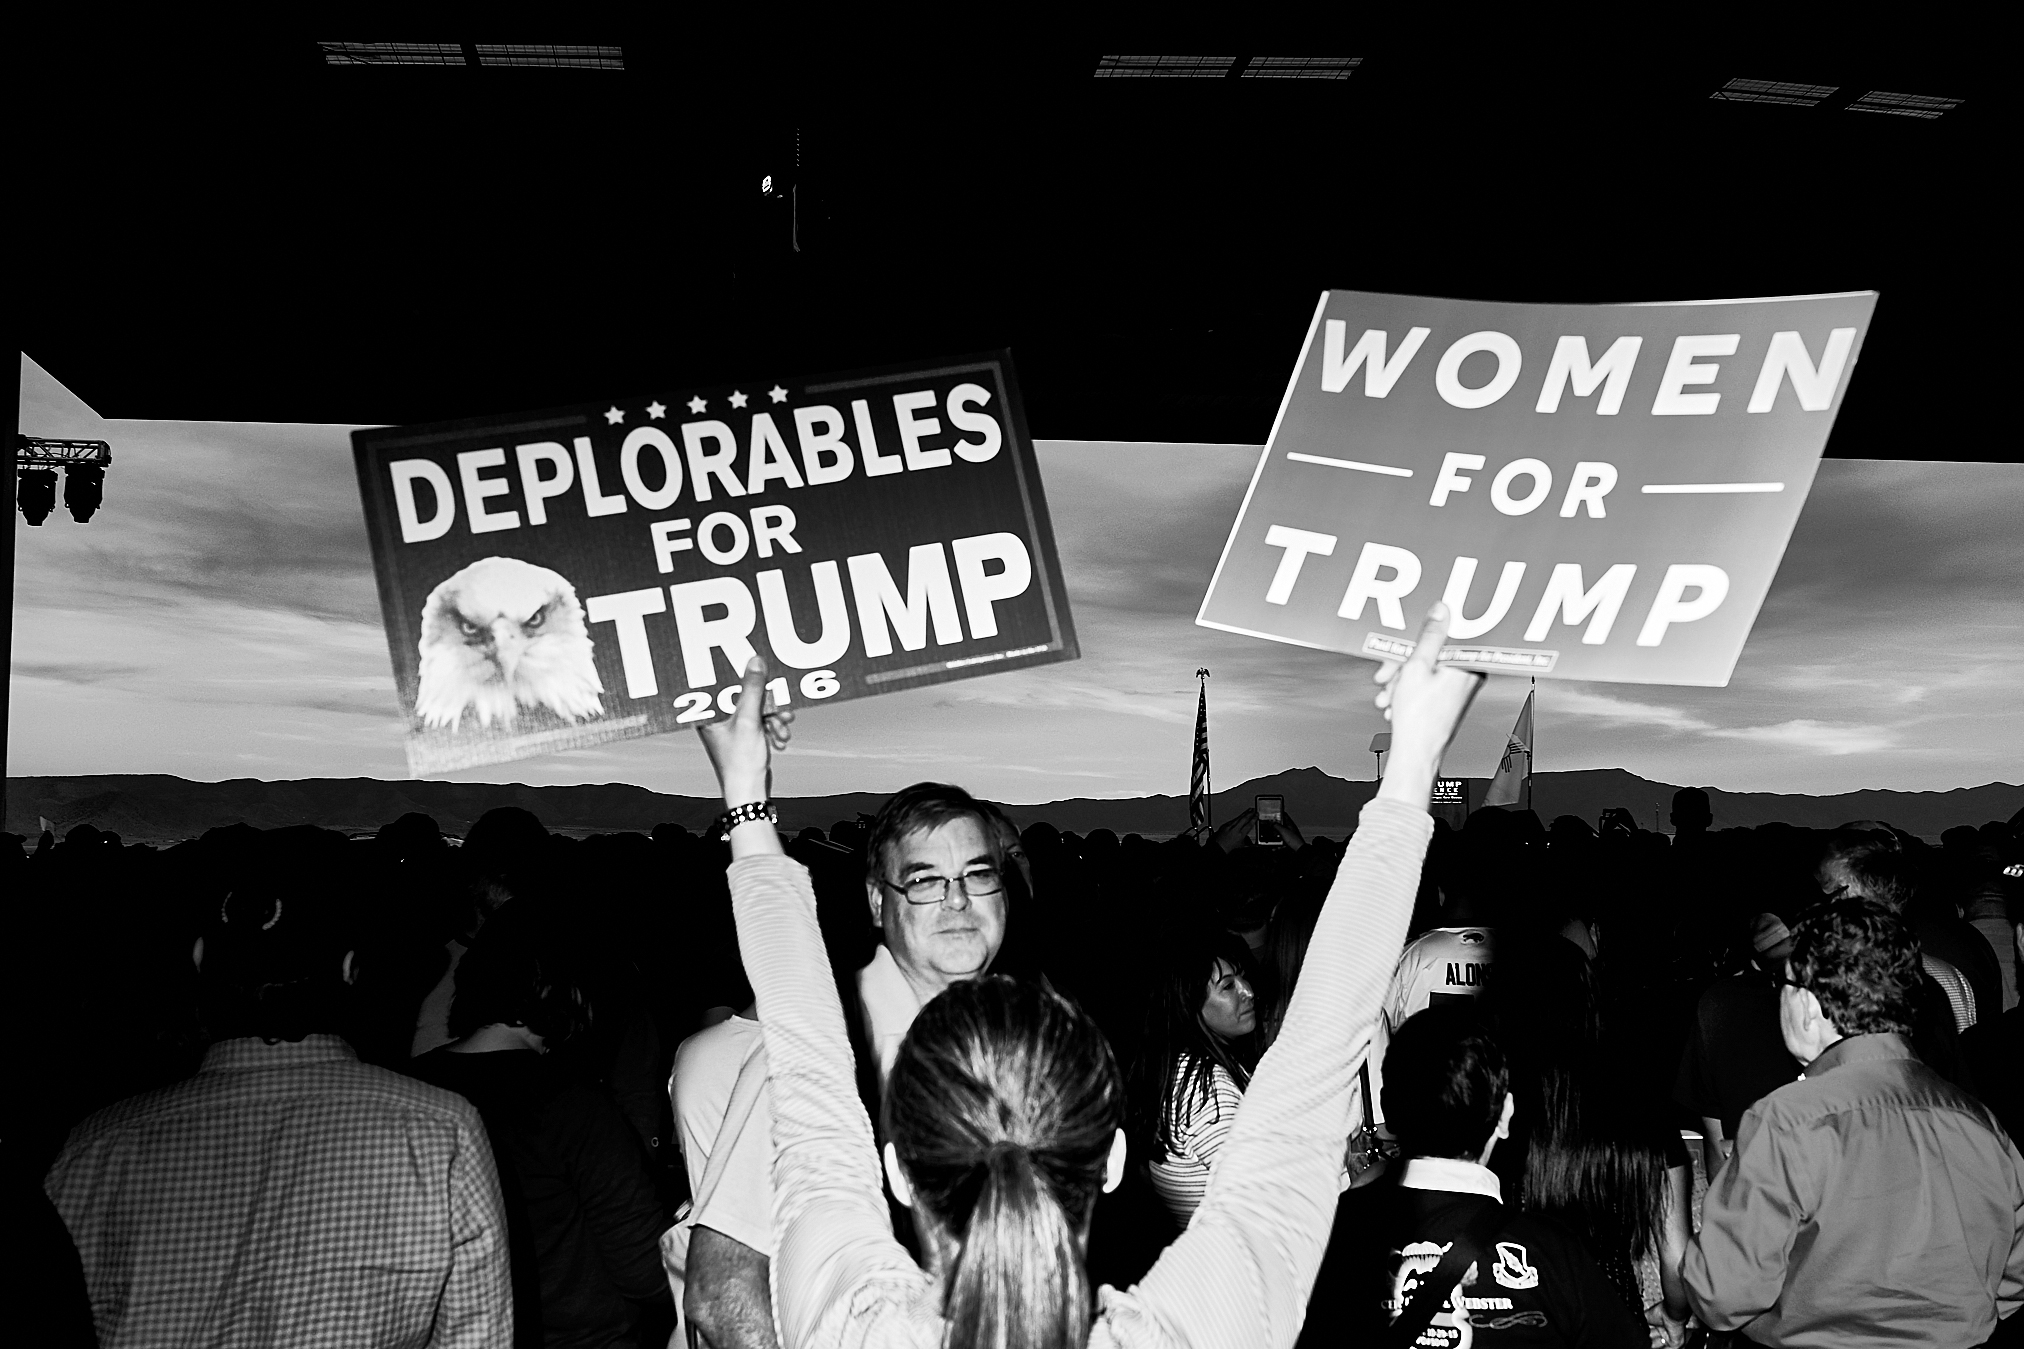 Deplorables for Trump by Peter Adams.